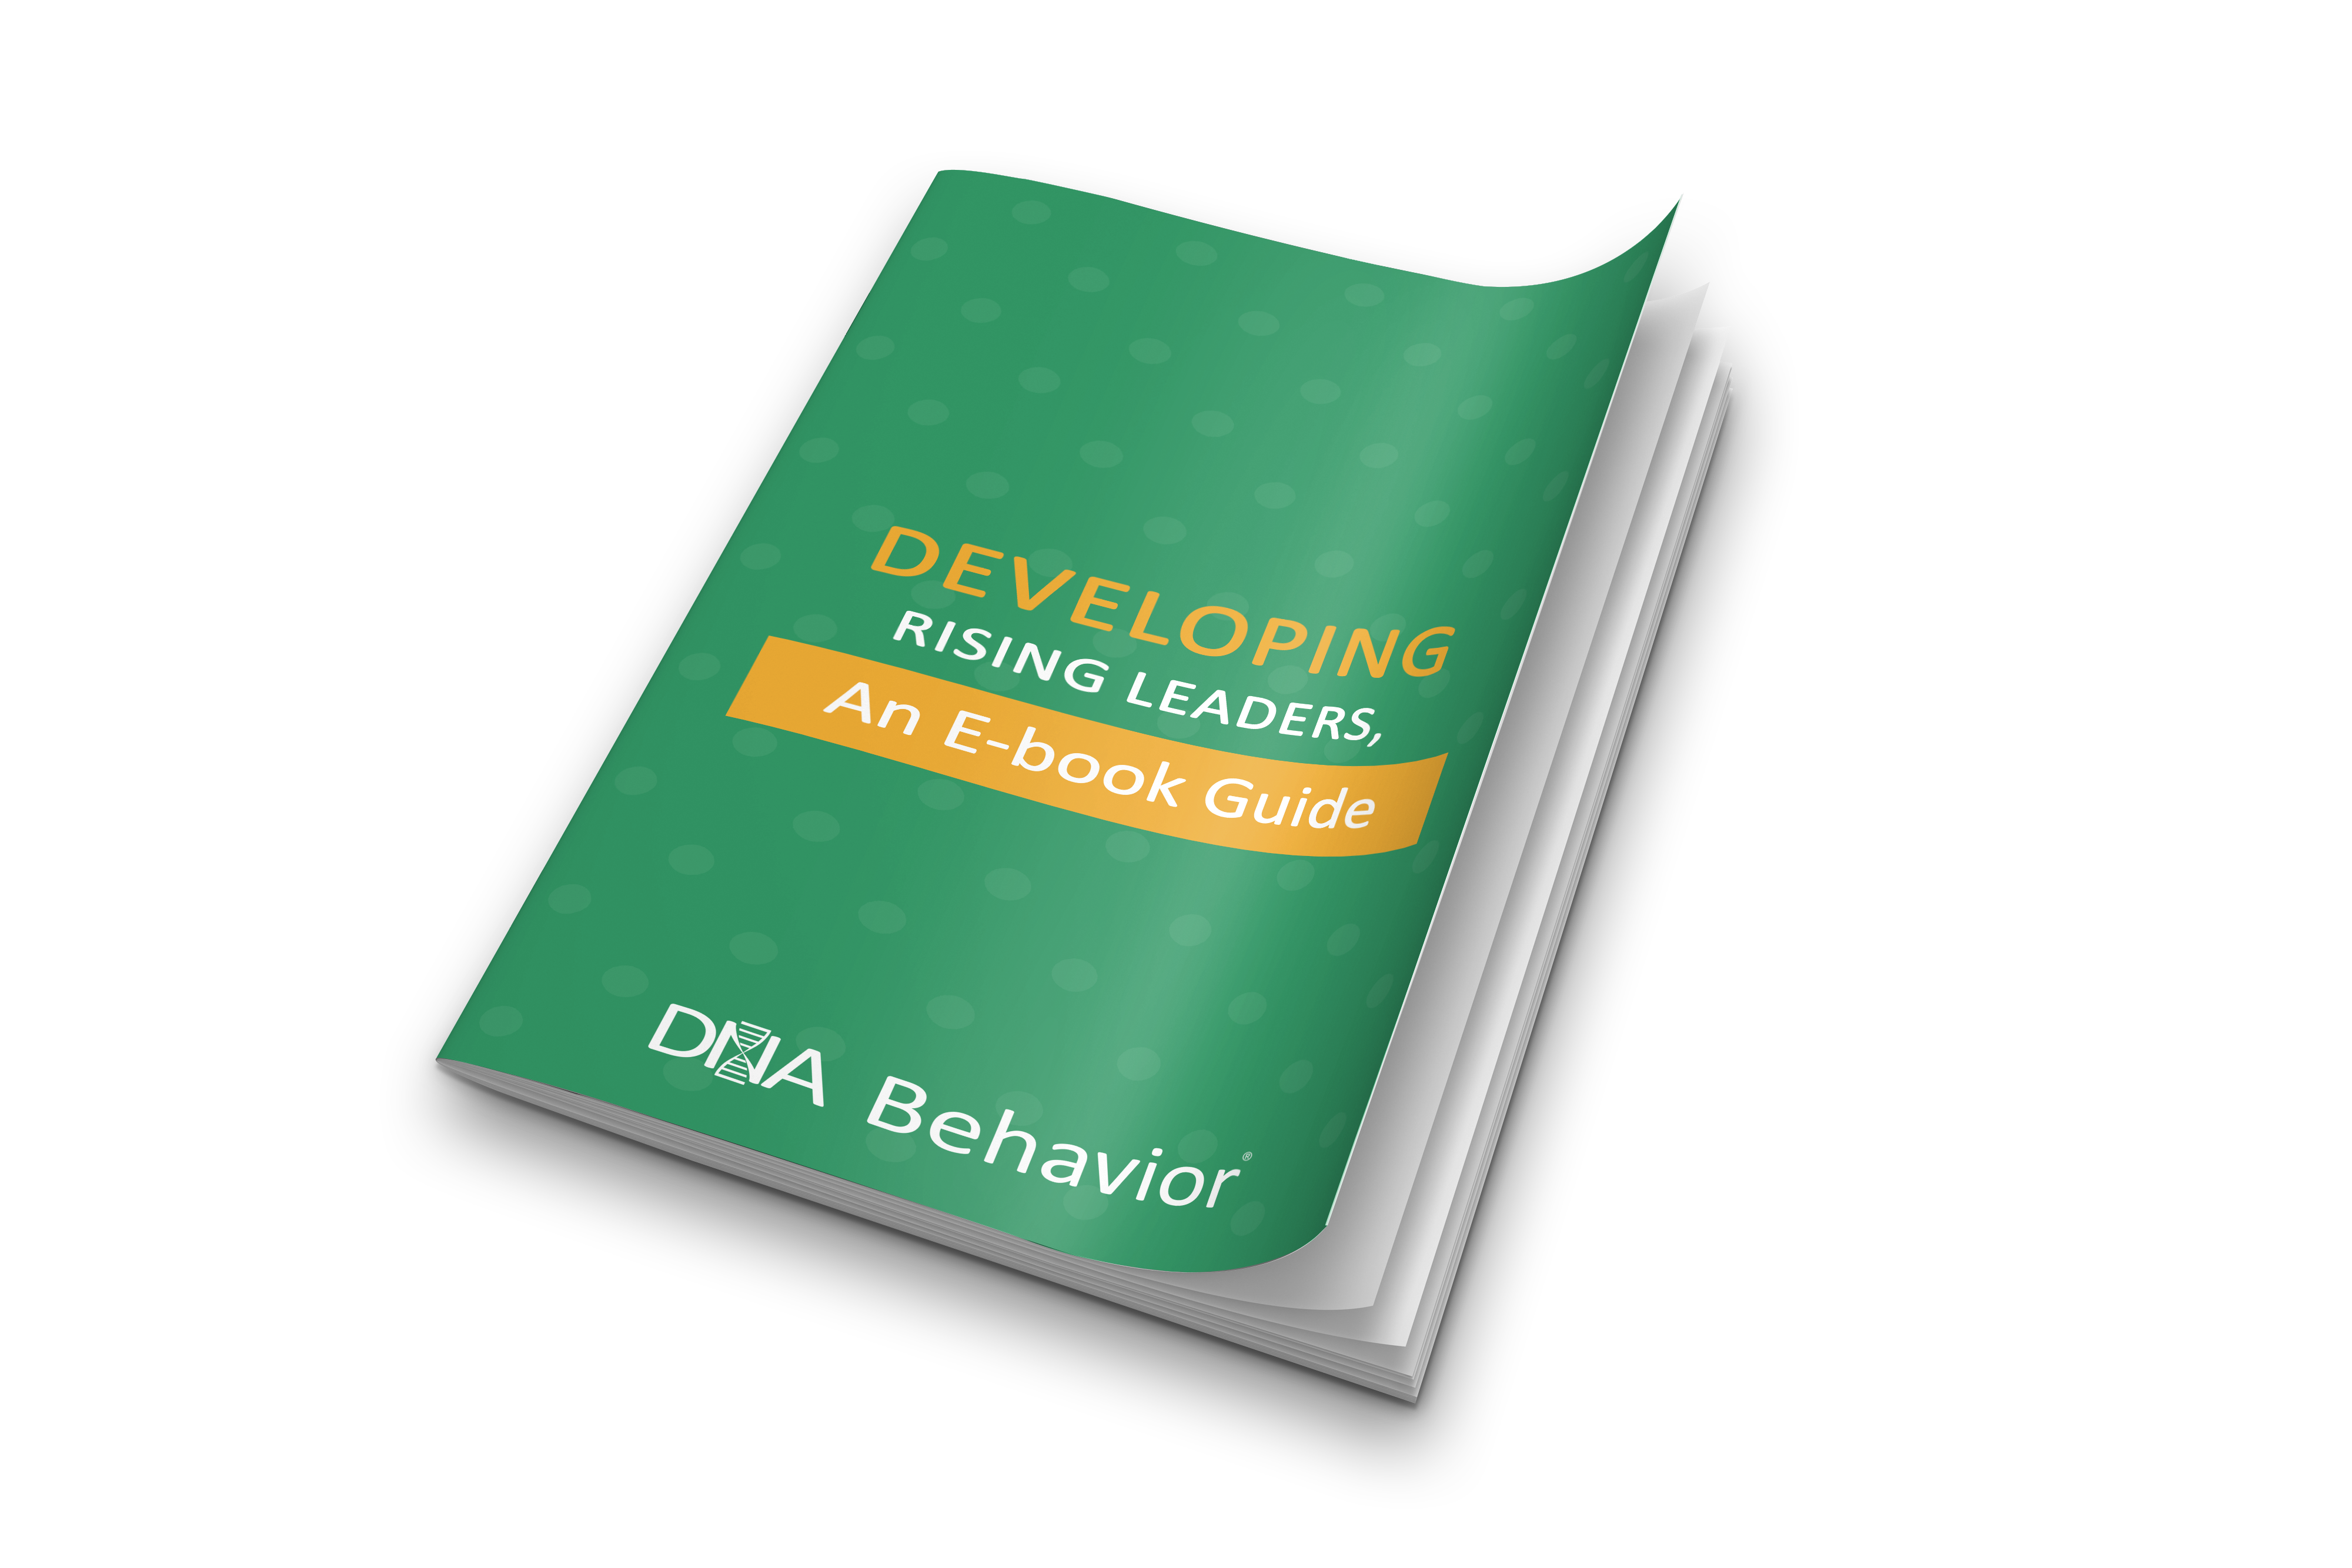 Developing Rising Leaders, An E-book Guide